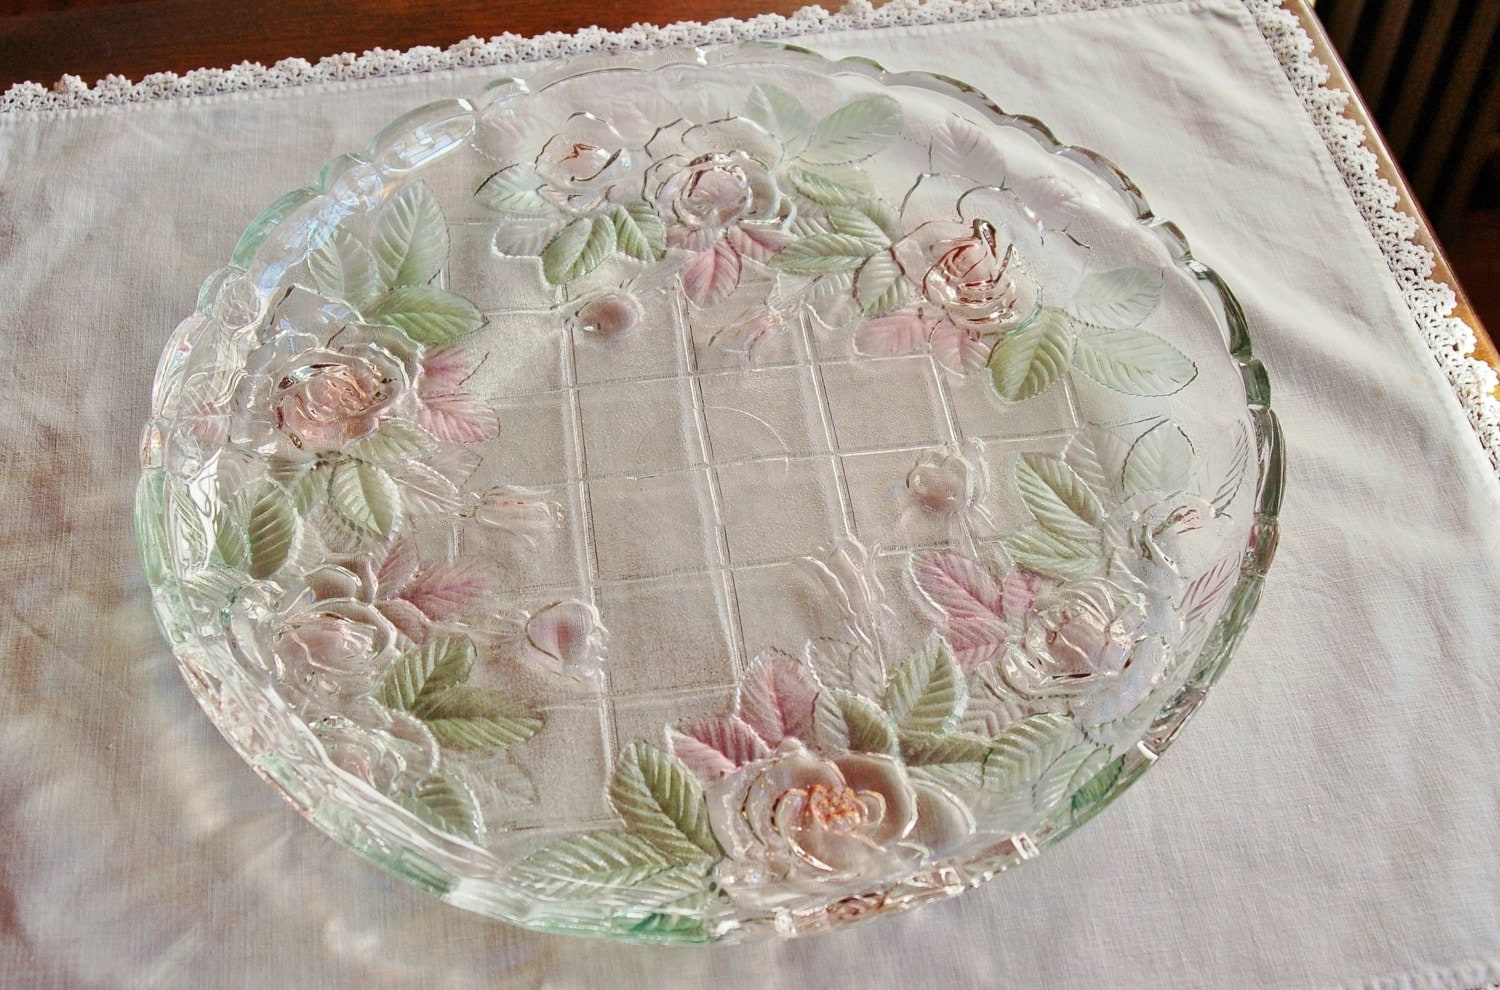 mikasa studio nova beauty rose glass platter mother 39 s